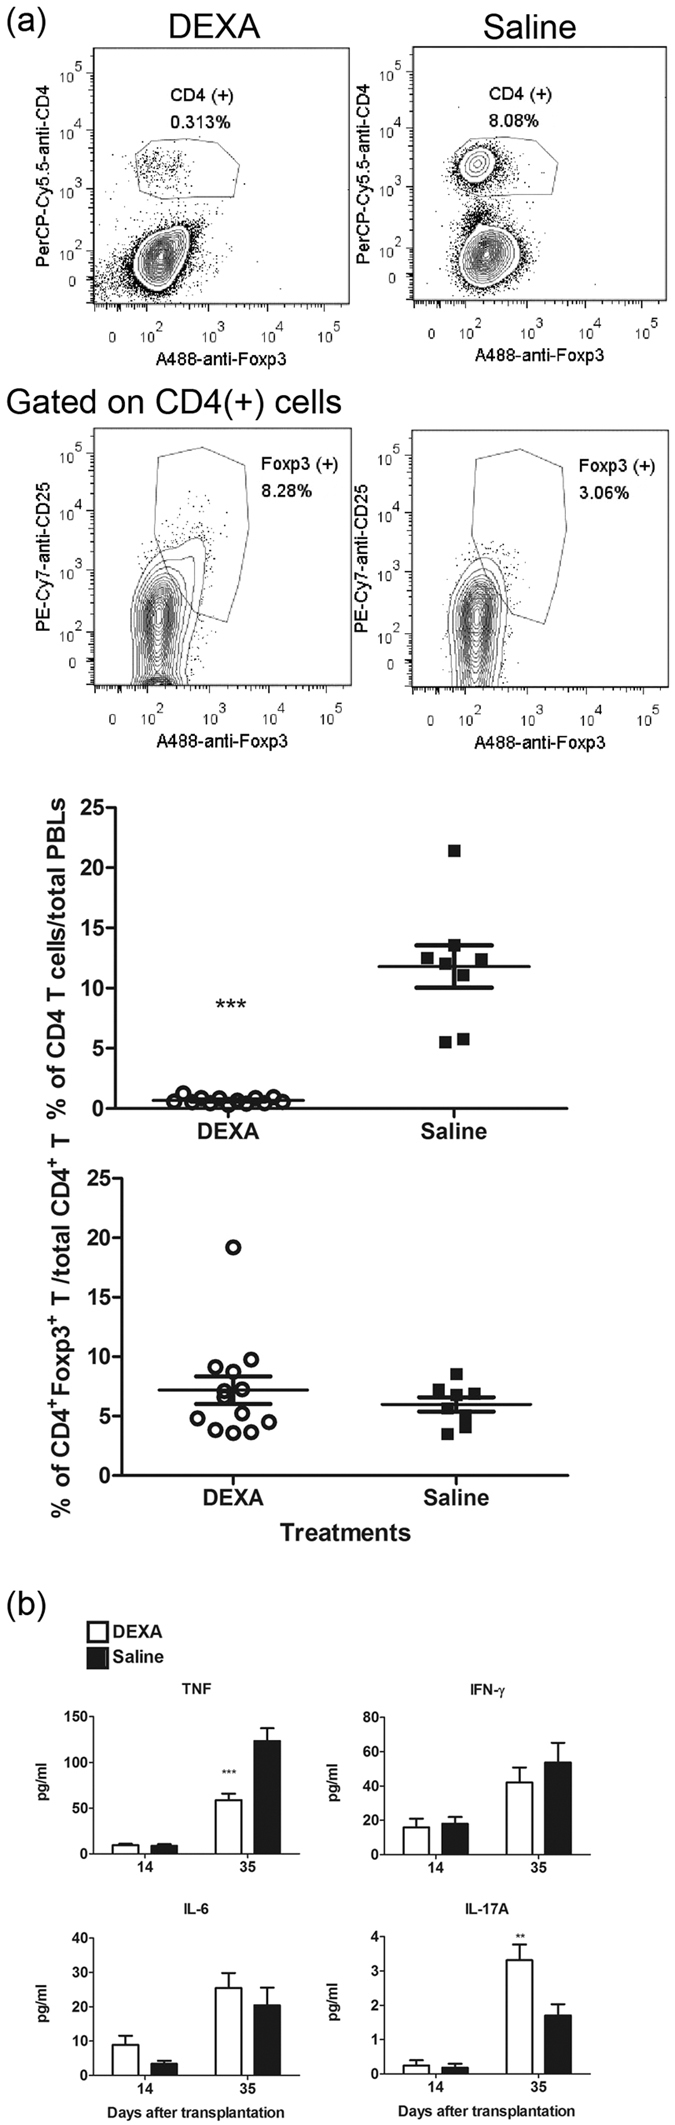 DEXA treatment reduced donor T cells survival and induced suppressive cytokine production in sera. ( a ) Reduction of Luc-expressing T cell expansion in PBLs from Rag1-ko mice that received naïve T cells and were treated with DEXA for three weeks. At D28 PAT, PBLs were s stained as described in Methods, and then analyzed by flow cytometry. Percentages of CD4 + T cells in total PBL and percentages of CD4 + Foxp3 + CD25 + T cells in CD4 + T cells are shown. ( b ) Sera were collected at D14 and D35 PAT and analyzed for serum TNF, IFN-γ, IL-6, and IL-17A production by CBA kits as described in Methods. Data from four repeated experiments are combined (DEXA, n = 16; saline, n = 12) and represented by Means ± SEM. (** p